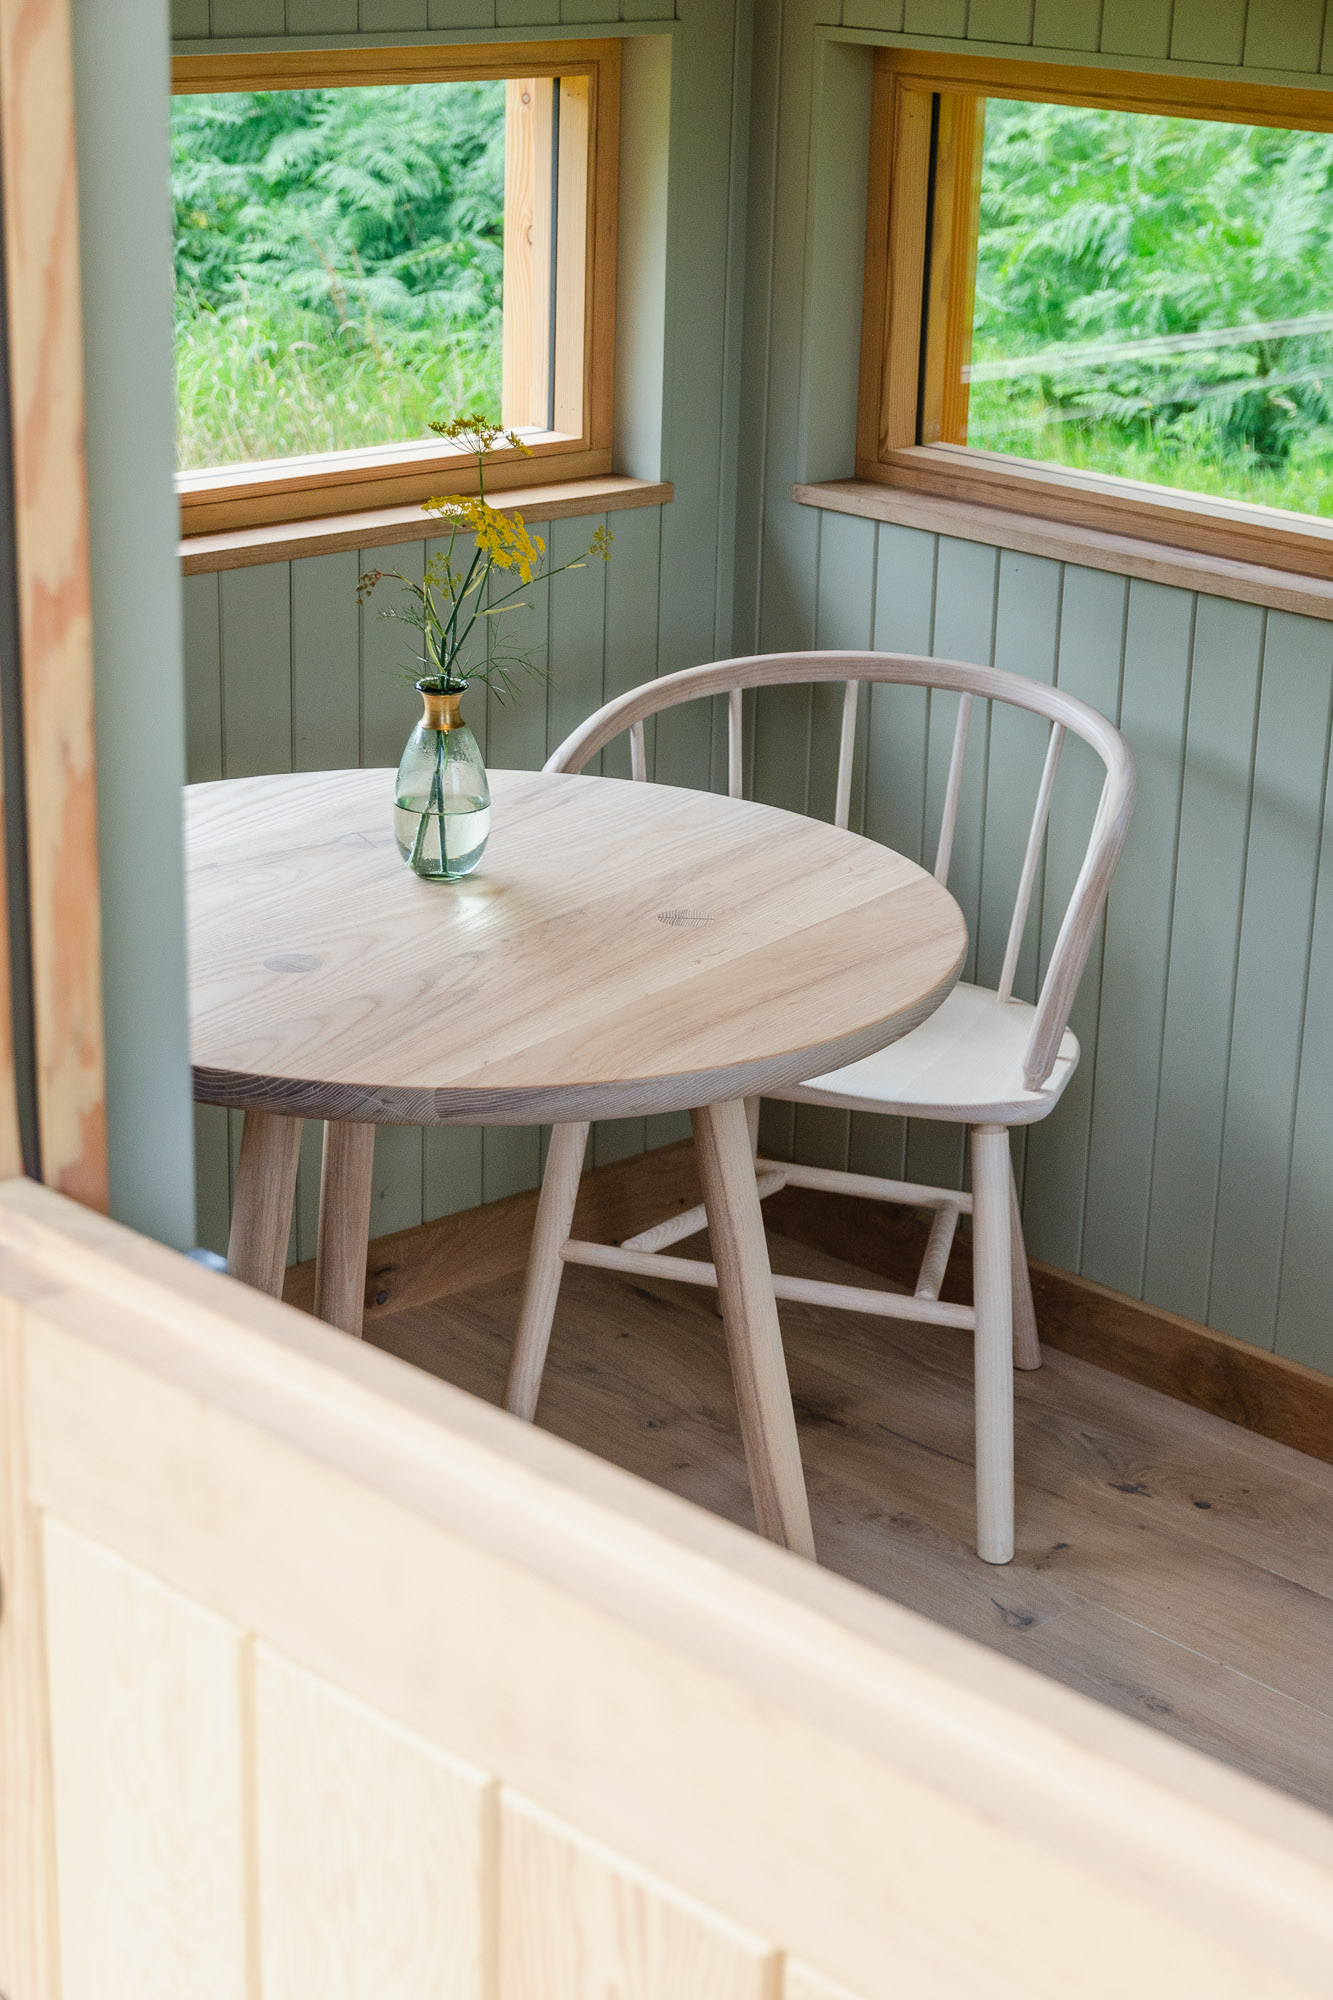 off grid tiny wooden nomad cabin office with ash table and chairs looking of natural landscape